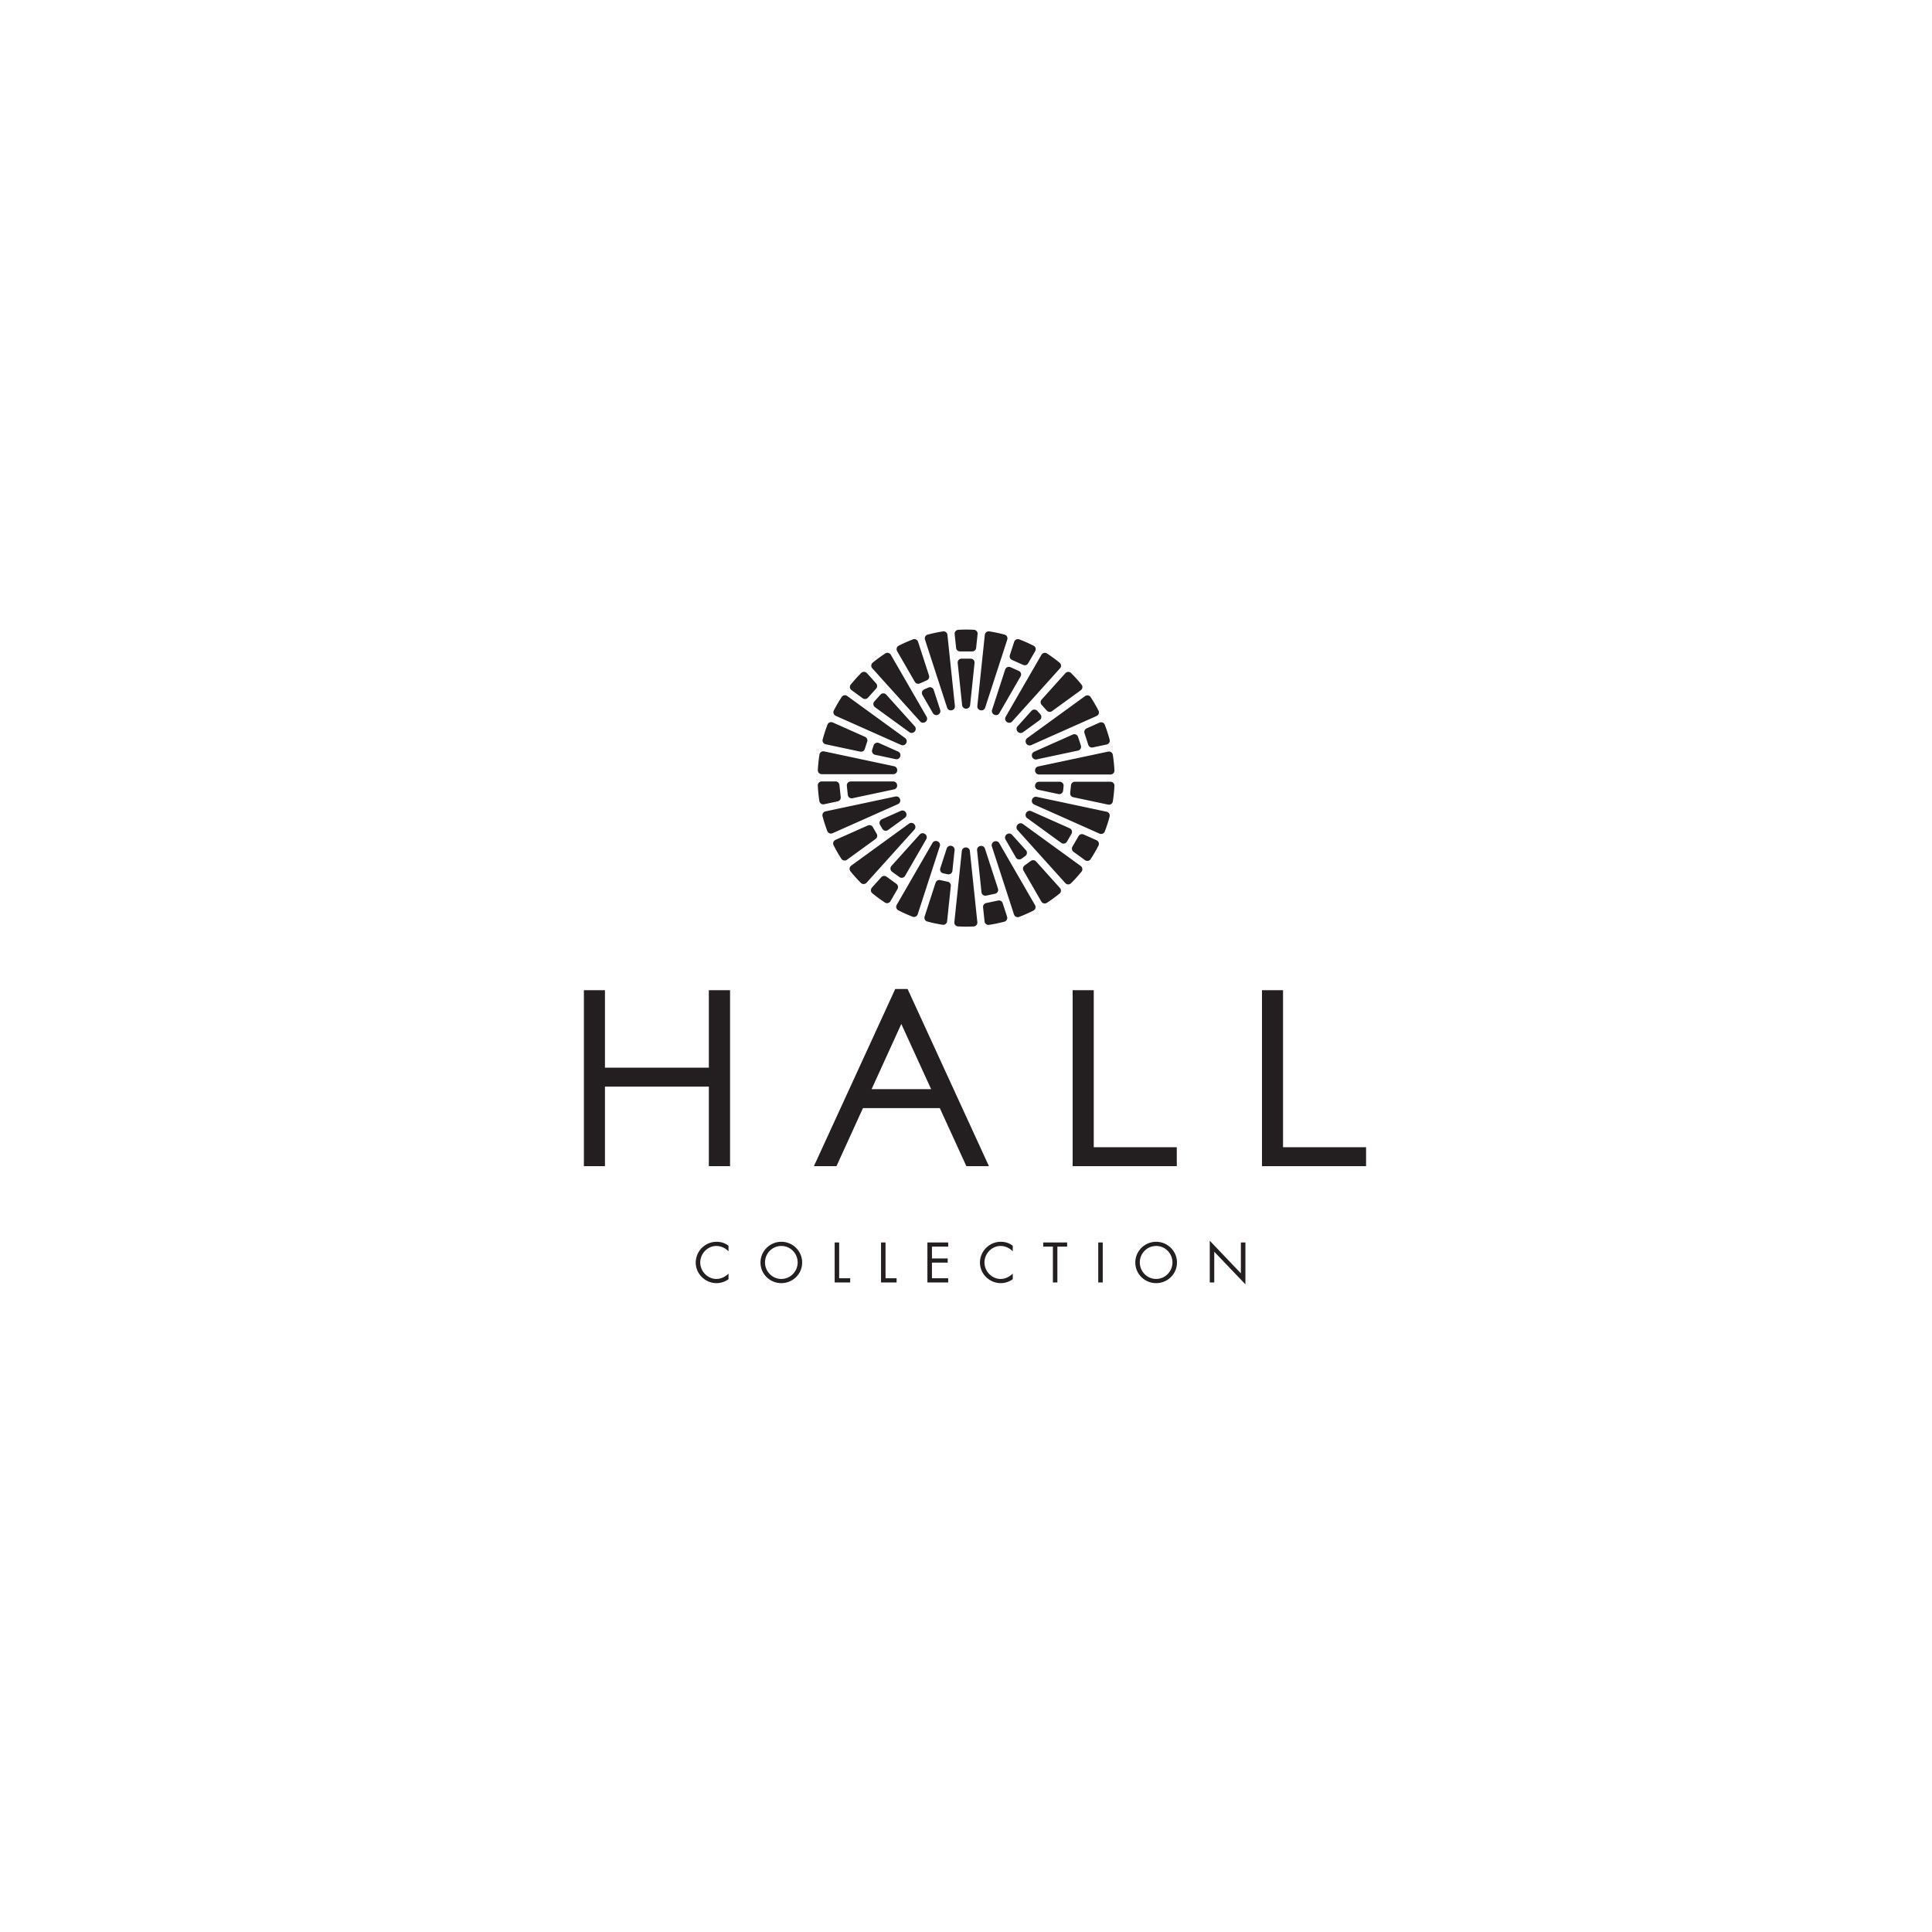 ND-hallcollection-logo.jpg